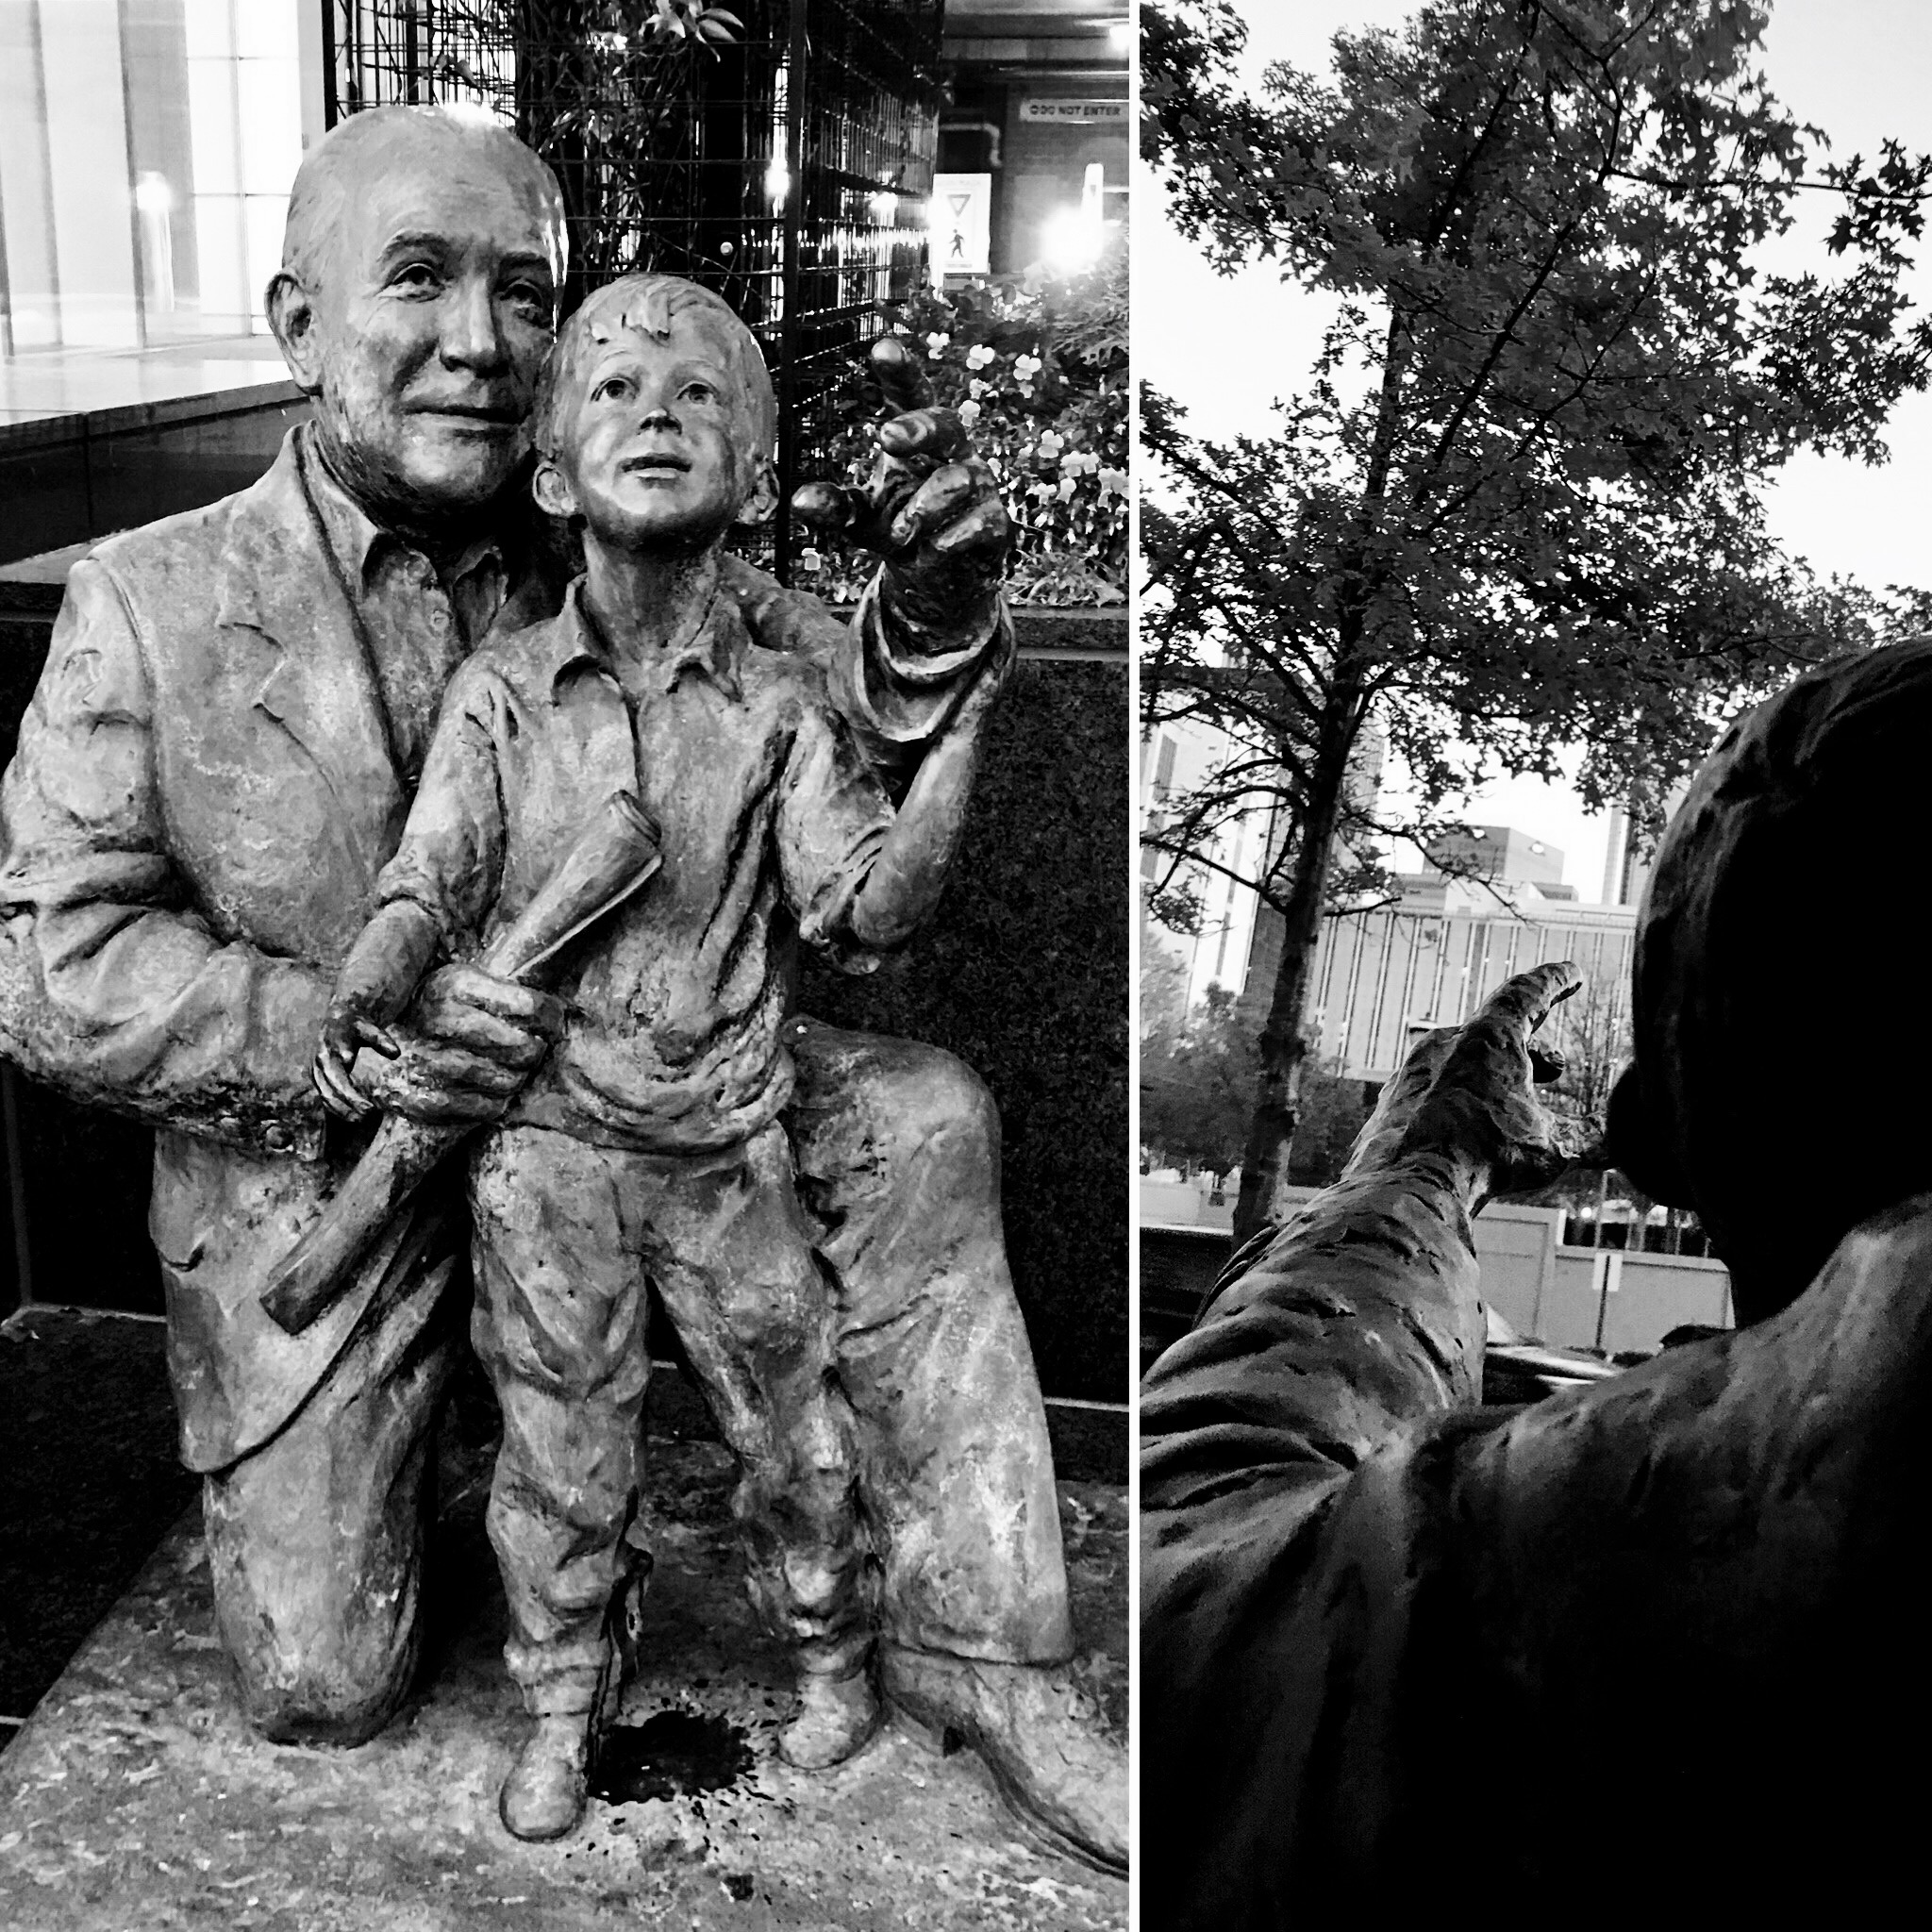 Statue of a man very excited to point out his favorite tree to a young boy.